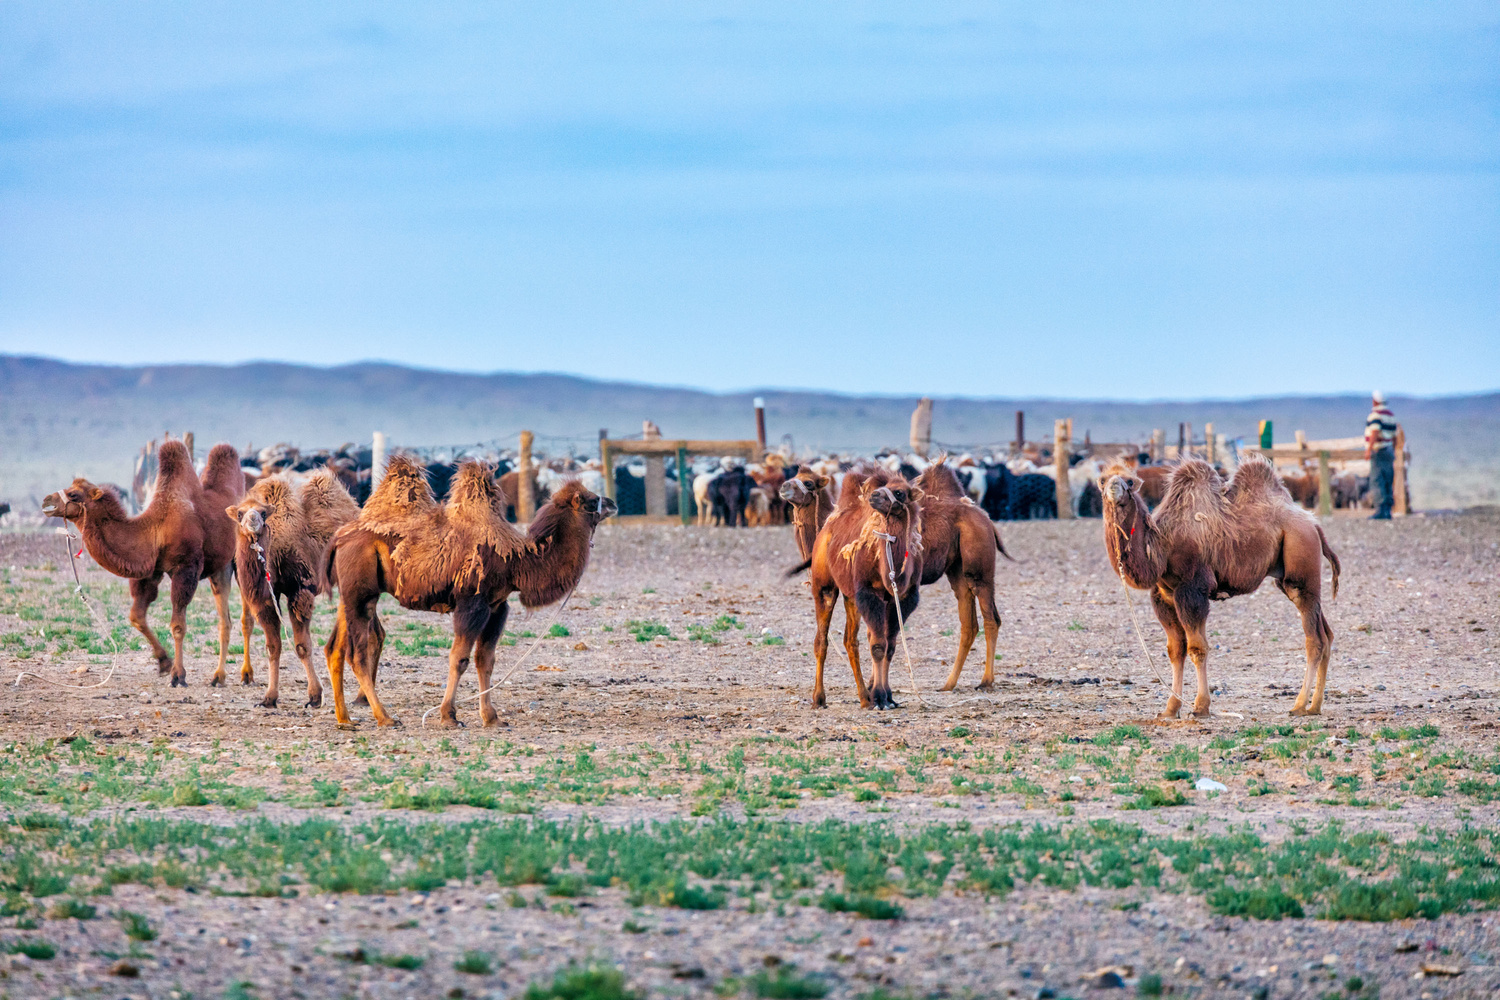 Bactrain Camels - a shot from Jeff's Mongolia documentary